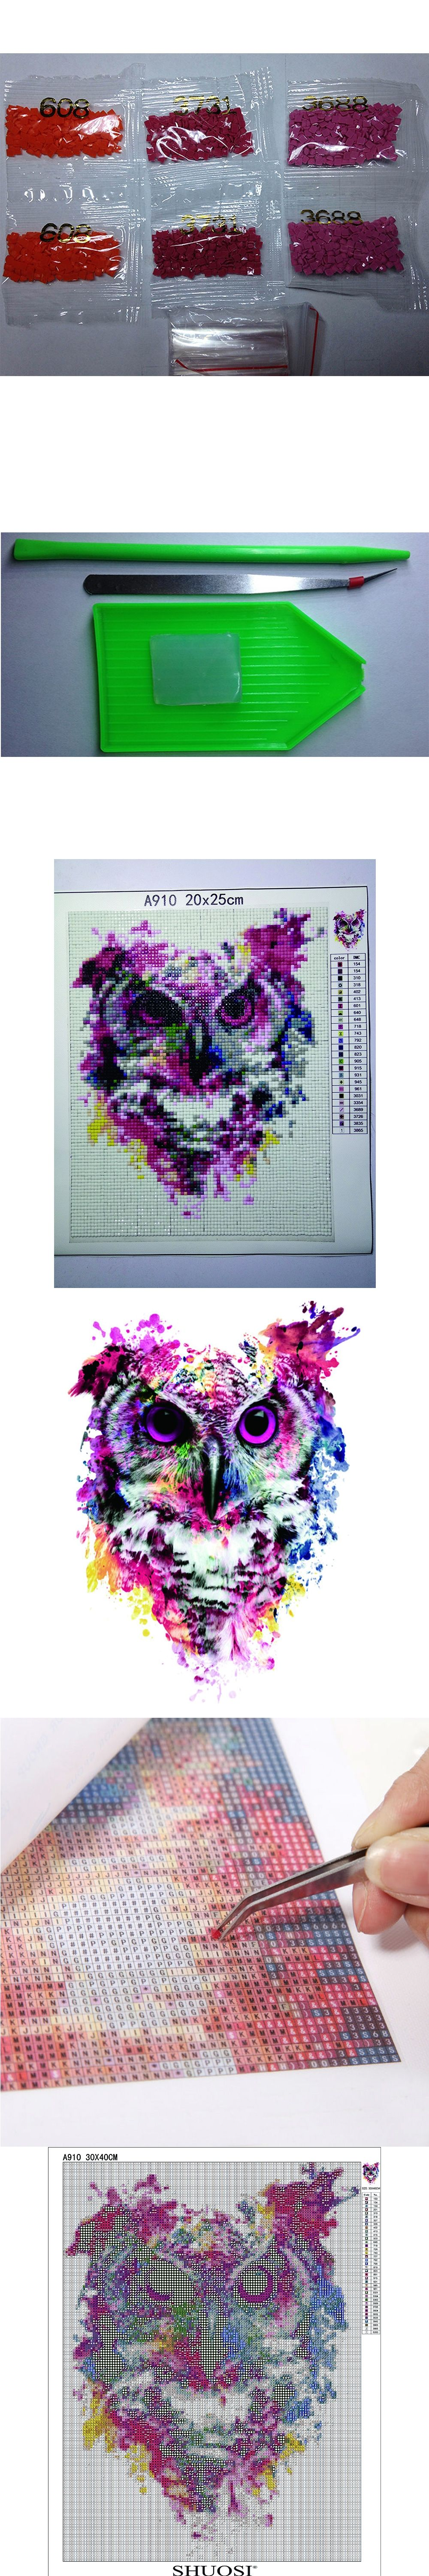 decoration painting hot stitch women embroidery product diy for photo naked buy detail cross beads kits diamond